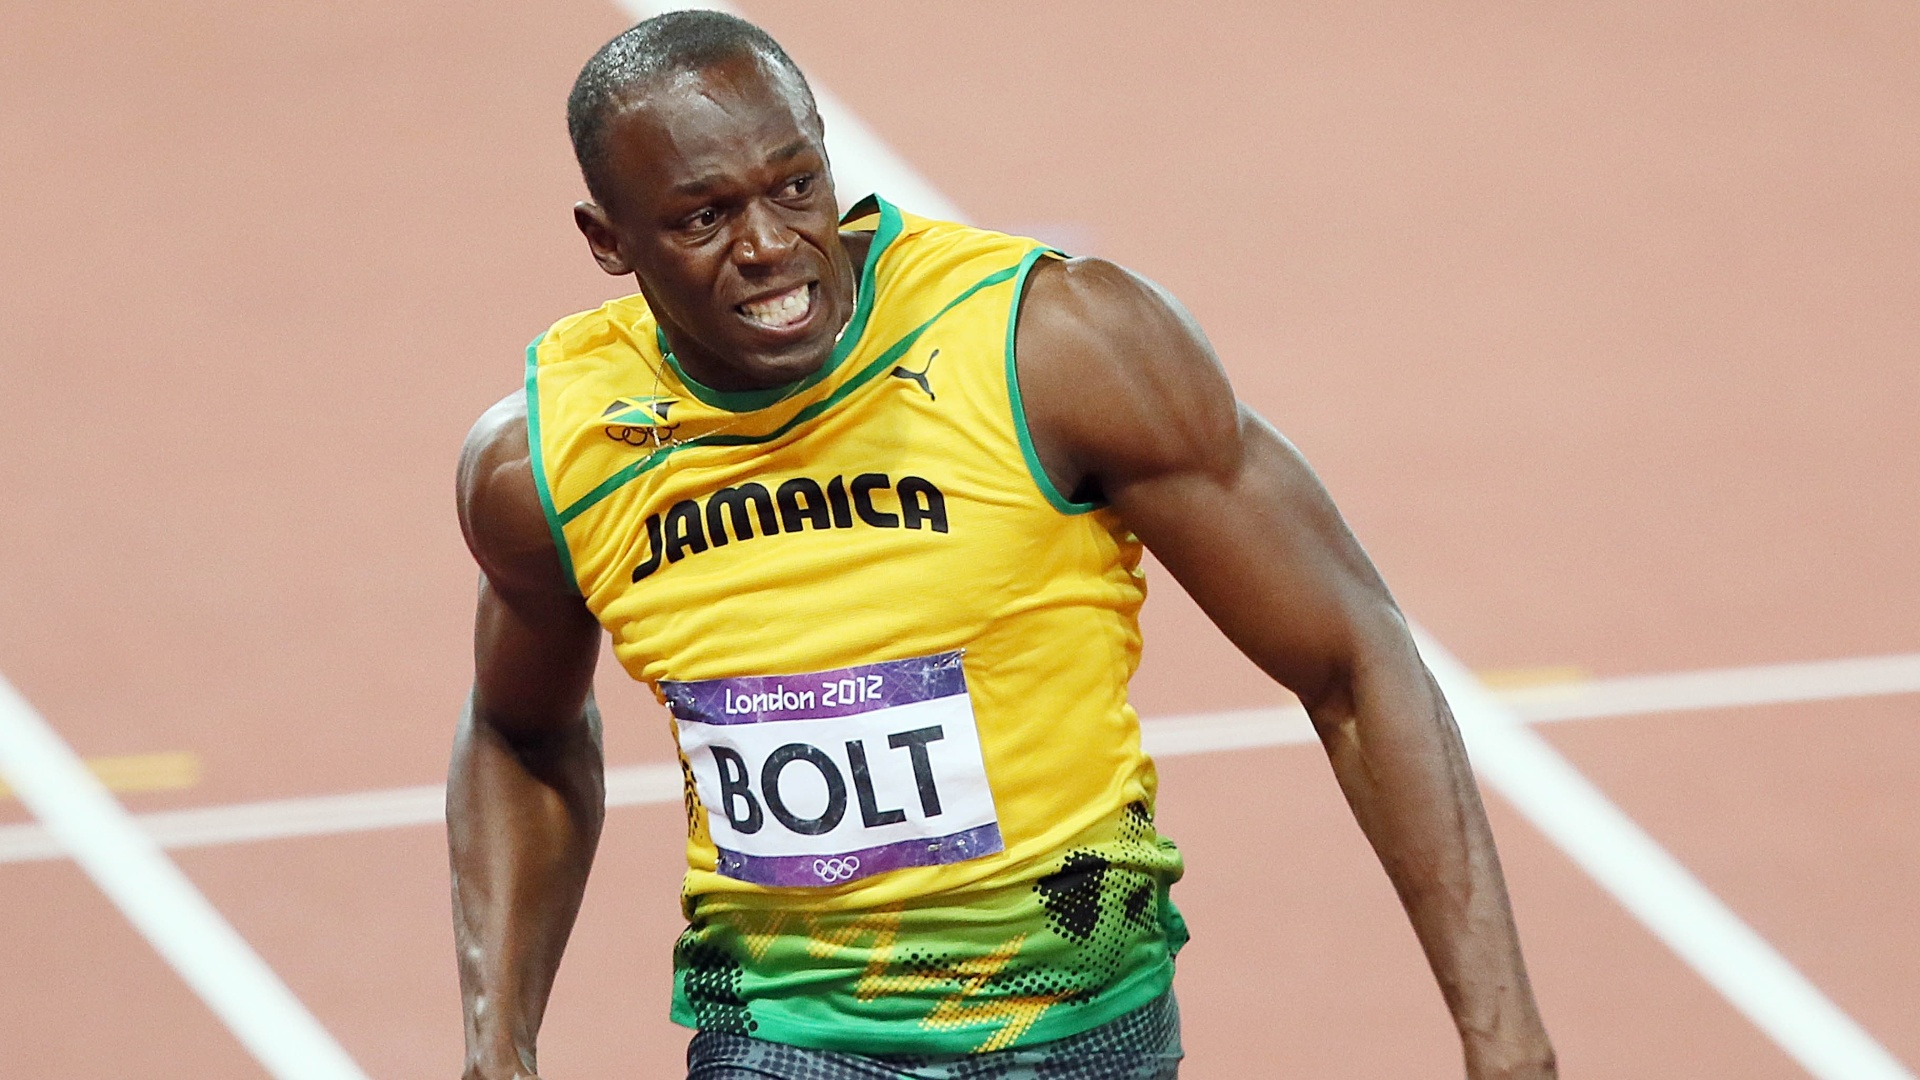 Usain Bolt corre durante final olmpica dos 100 m rasos